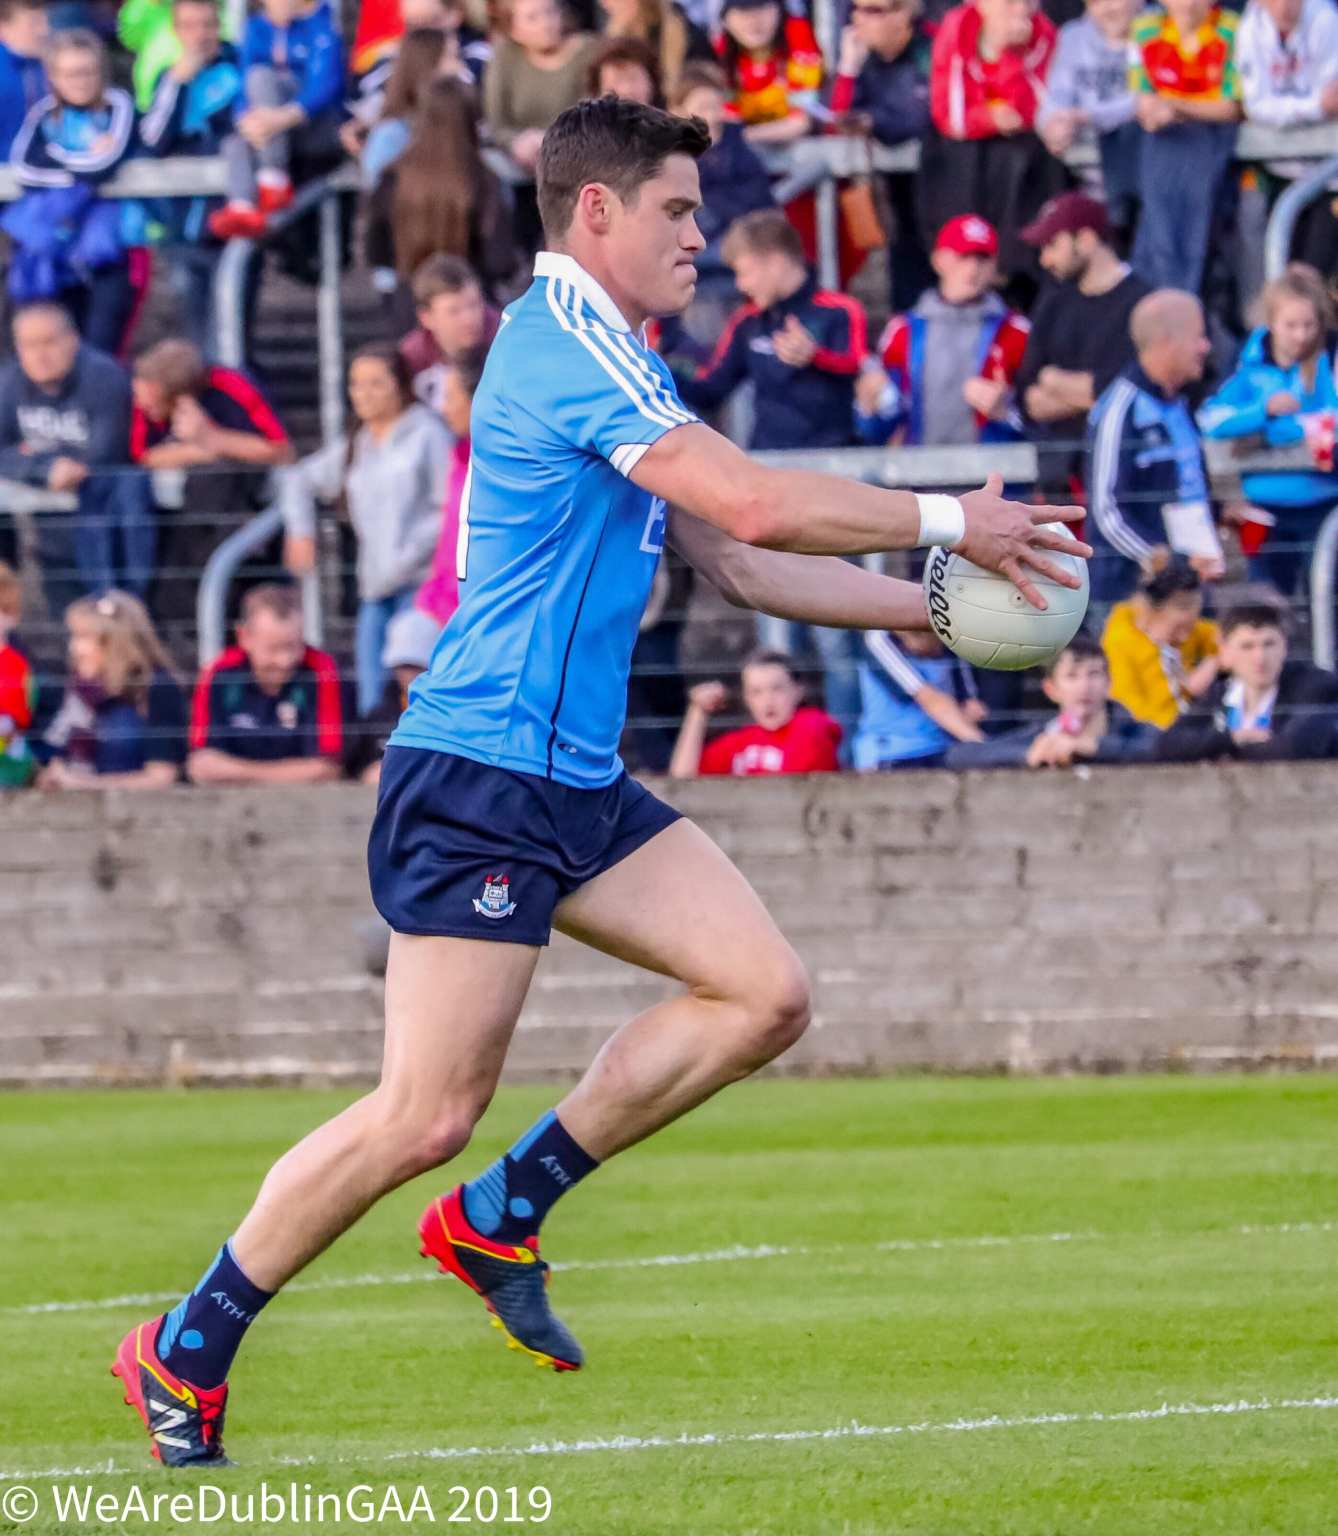 Dublin footballer Diarmuid Connolly who's decision to return to America for the summer could mean the end of his Dublin career